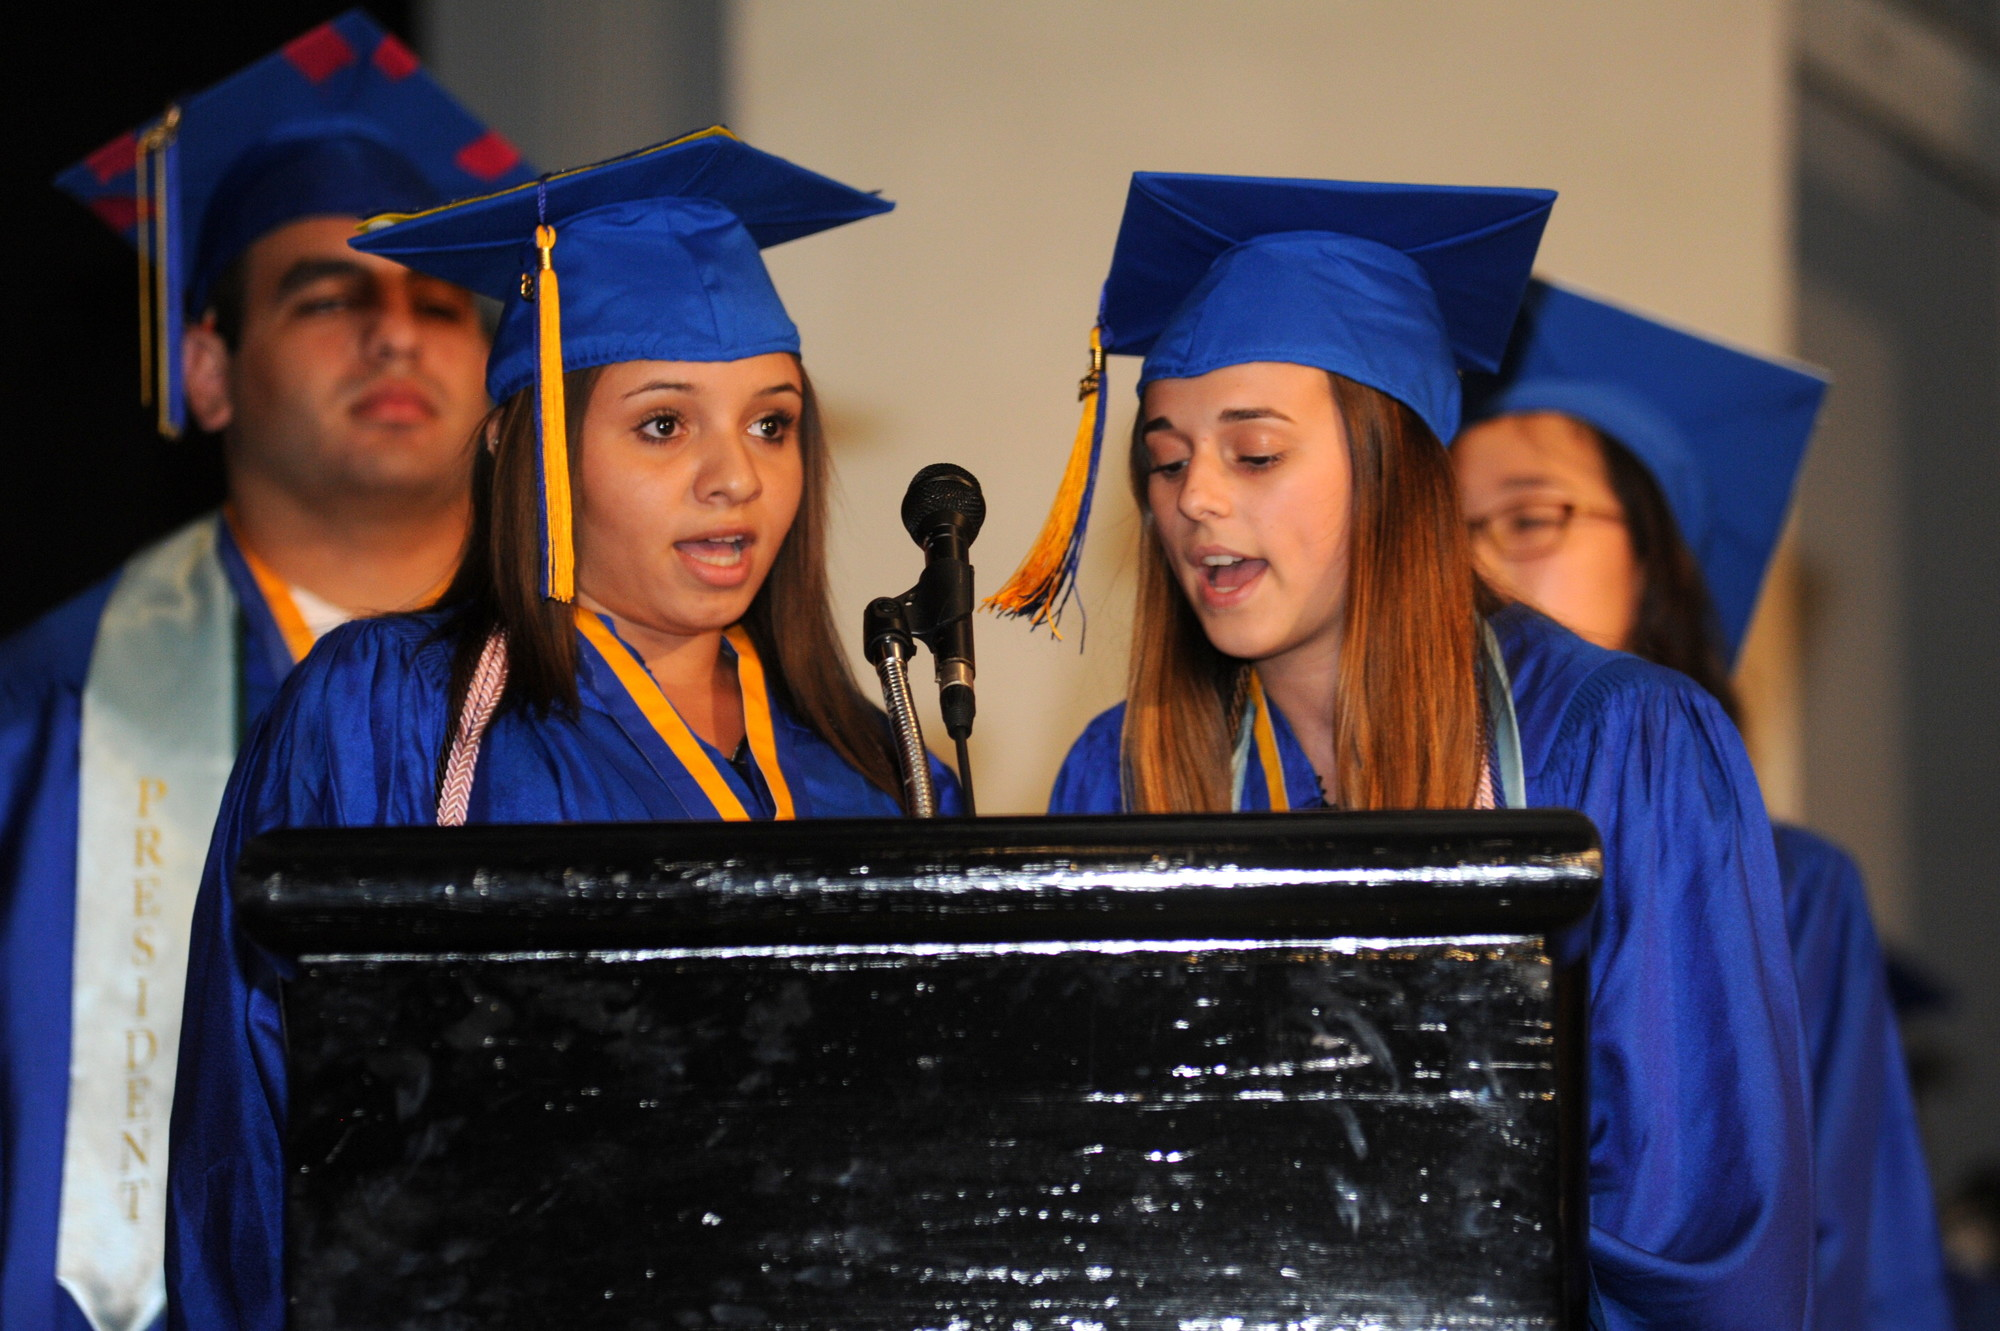 Seniors Gizzel George and Patricia Magliaro sang the national anthem at their graduation at the Tilles Center.